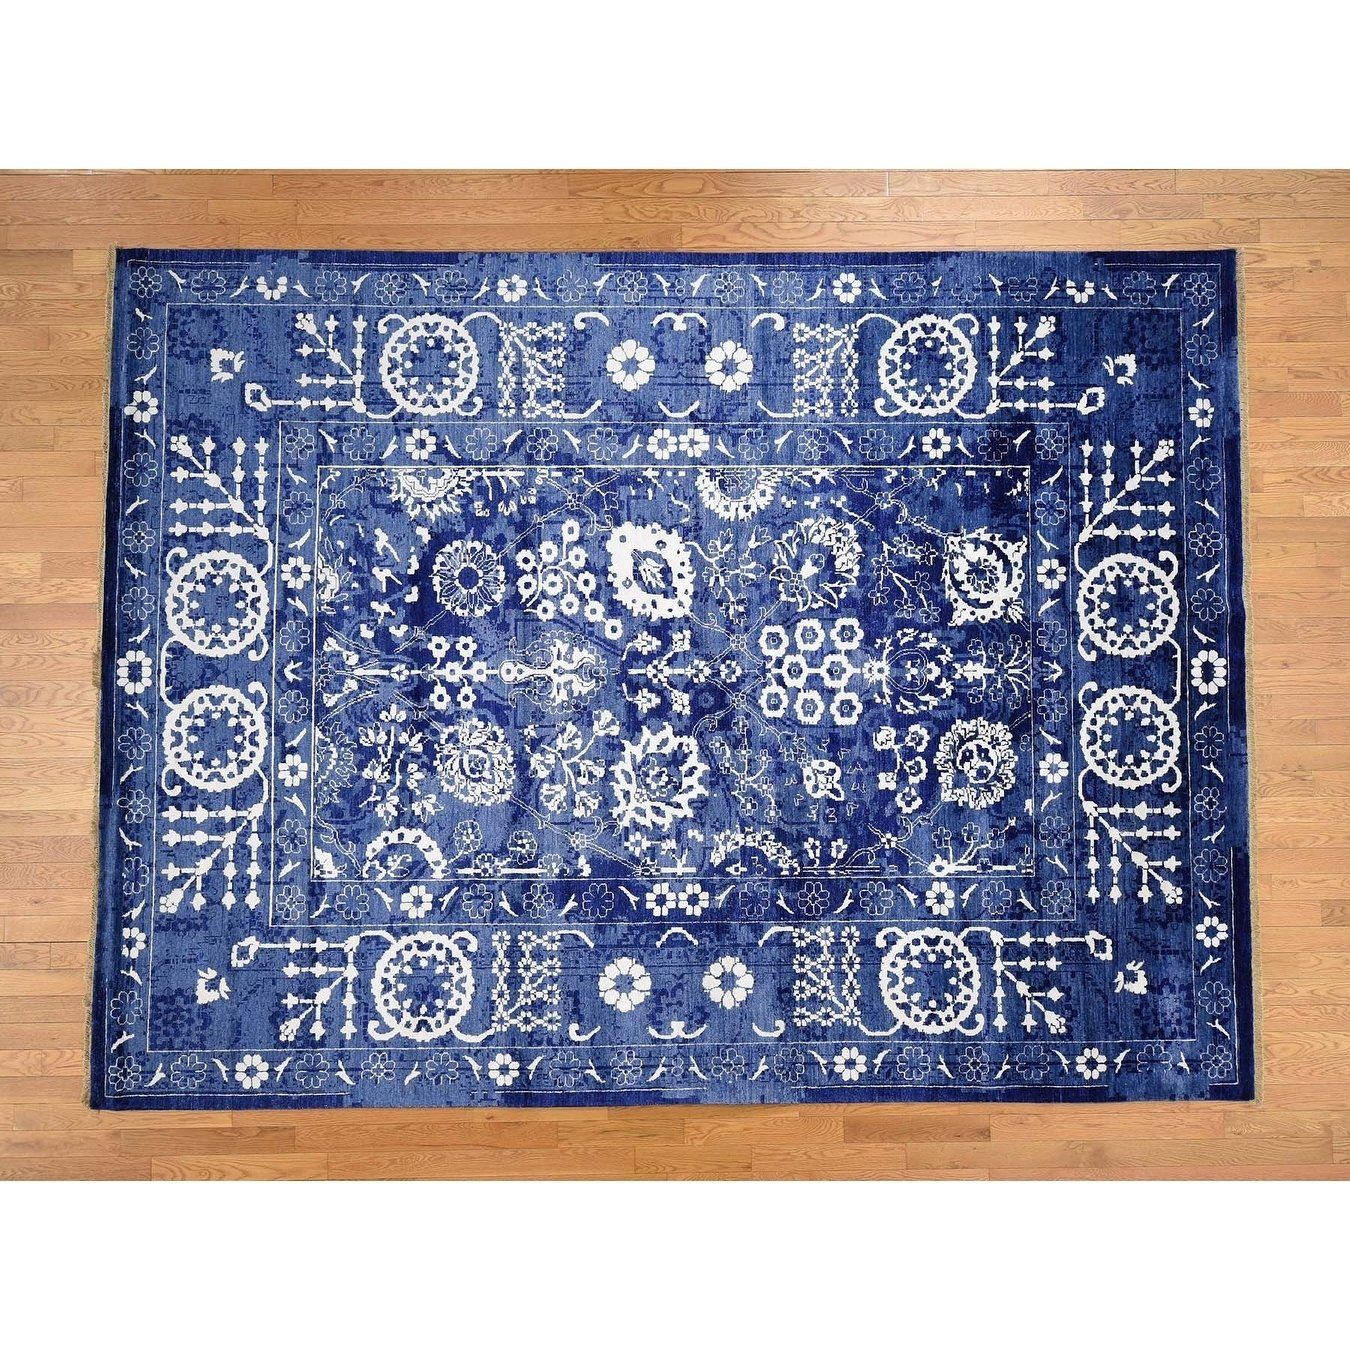 Hand Knotted Blue Modern Contemporary With Wool Oriental Rug 10 X 14 10 X 14 Blue Area Rugs Area Rugs Colorful Rugs